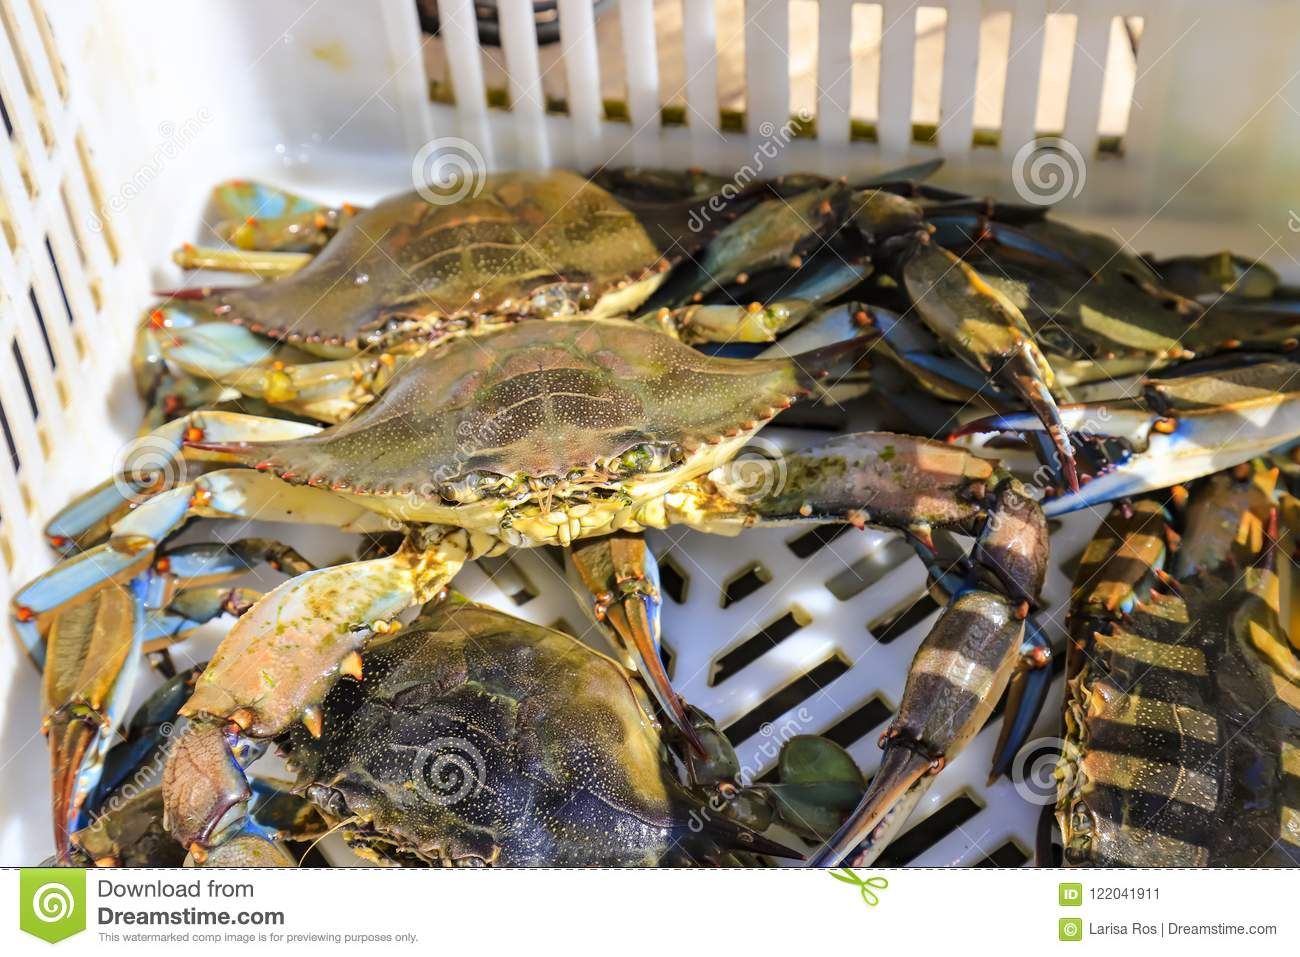 Large tropical crabs lie in a box, fishing